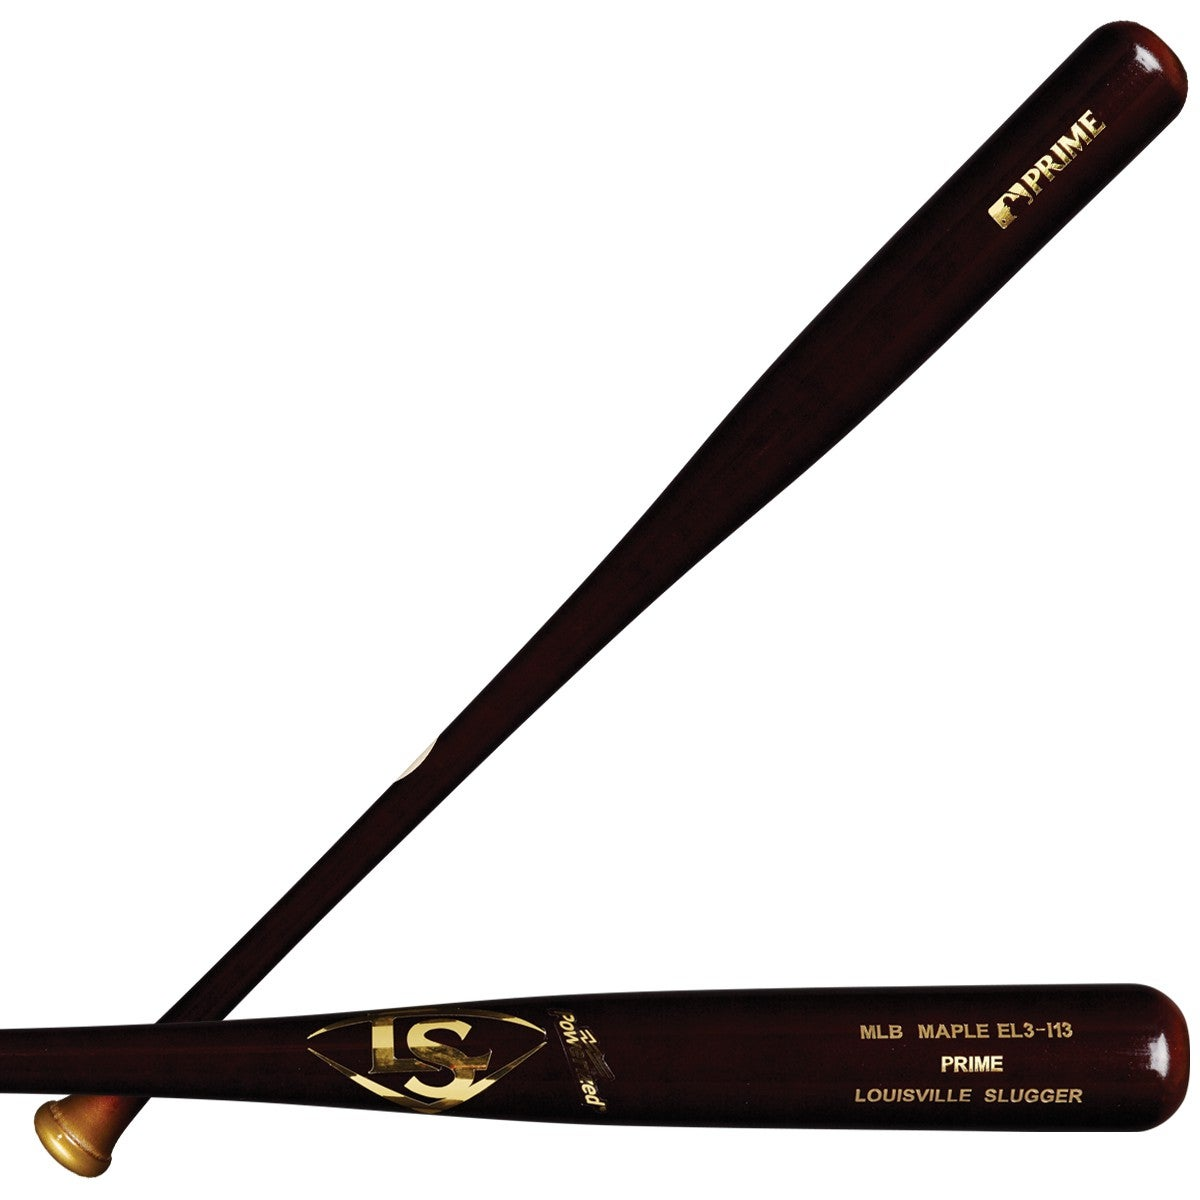 MLB Prime Maple EL3-I13 Hickory Baseball Bat